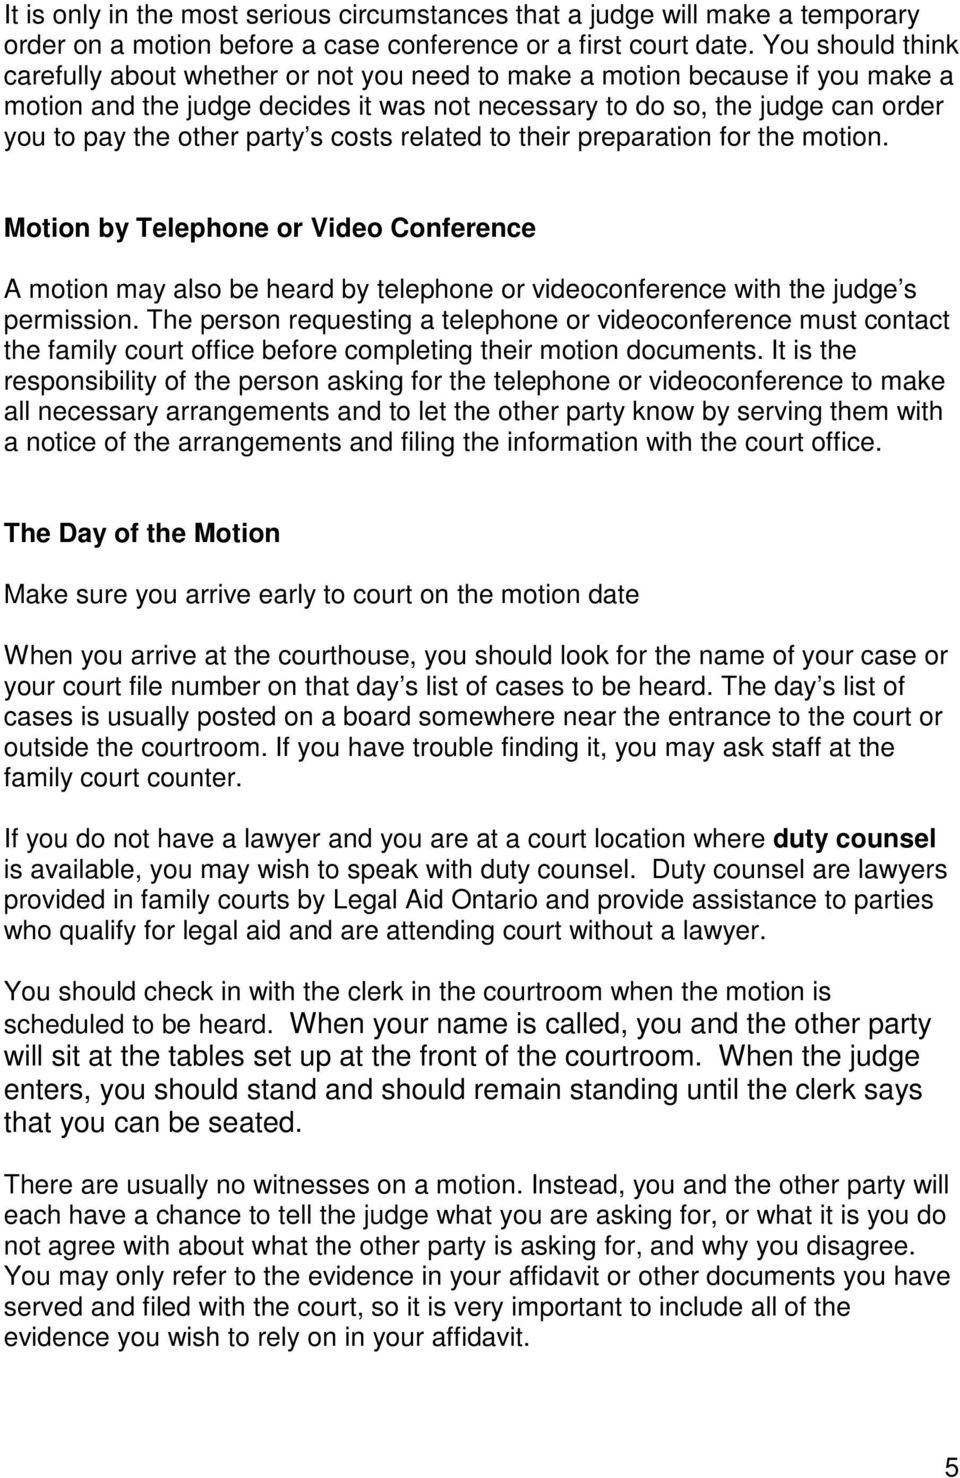 party s costs related to their preparation for the motion. Motion by Telephone or Video Conference A motion may also be heard by telephone or videoconference with the judge s permission.